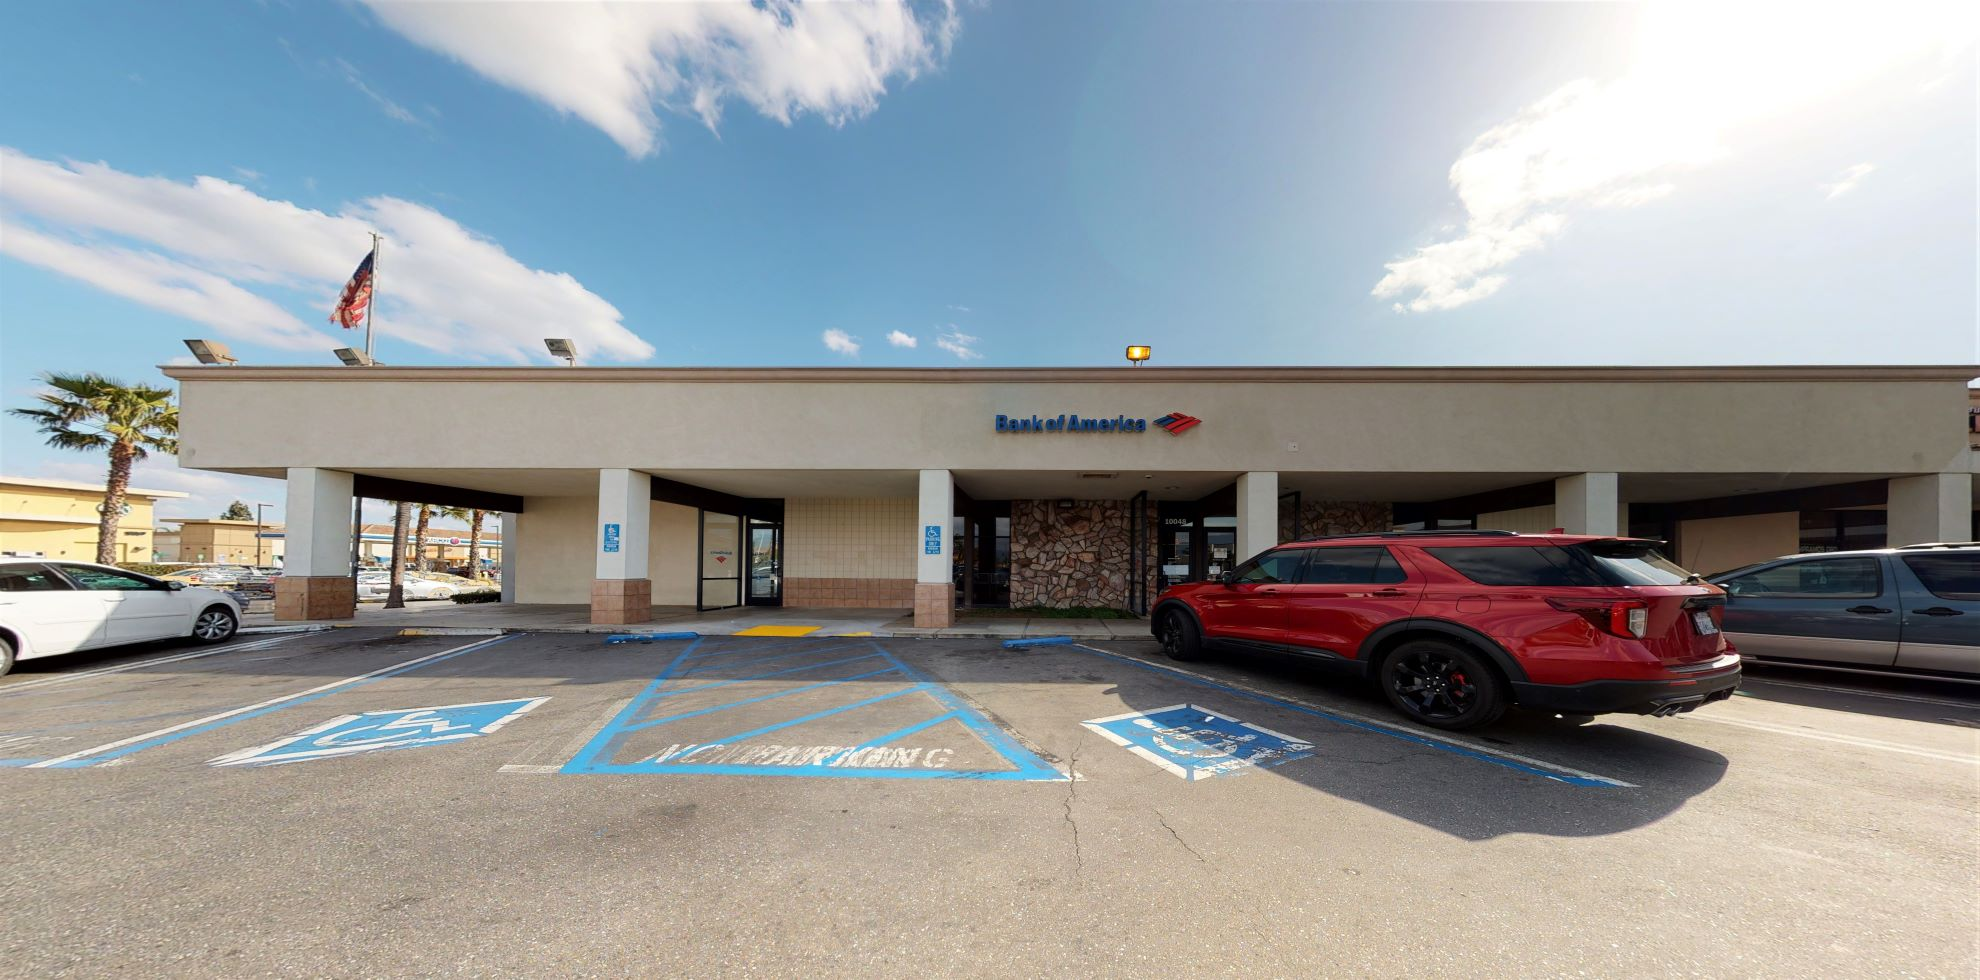 Bank of America financial center with walk-up ATM | 10048 Sierra Ave, Fontana, CA 92335